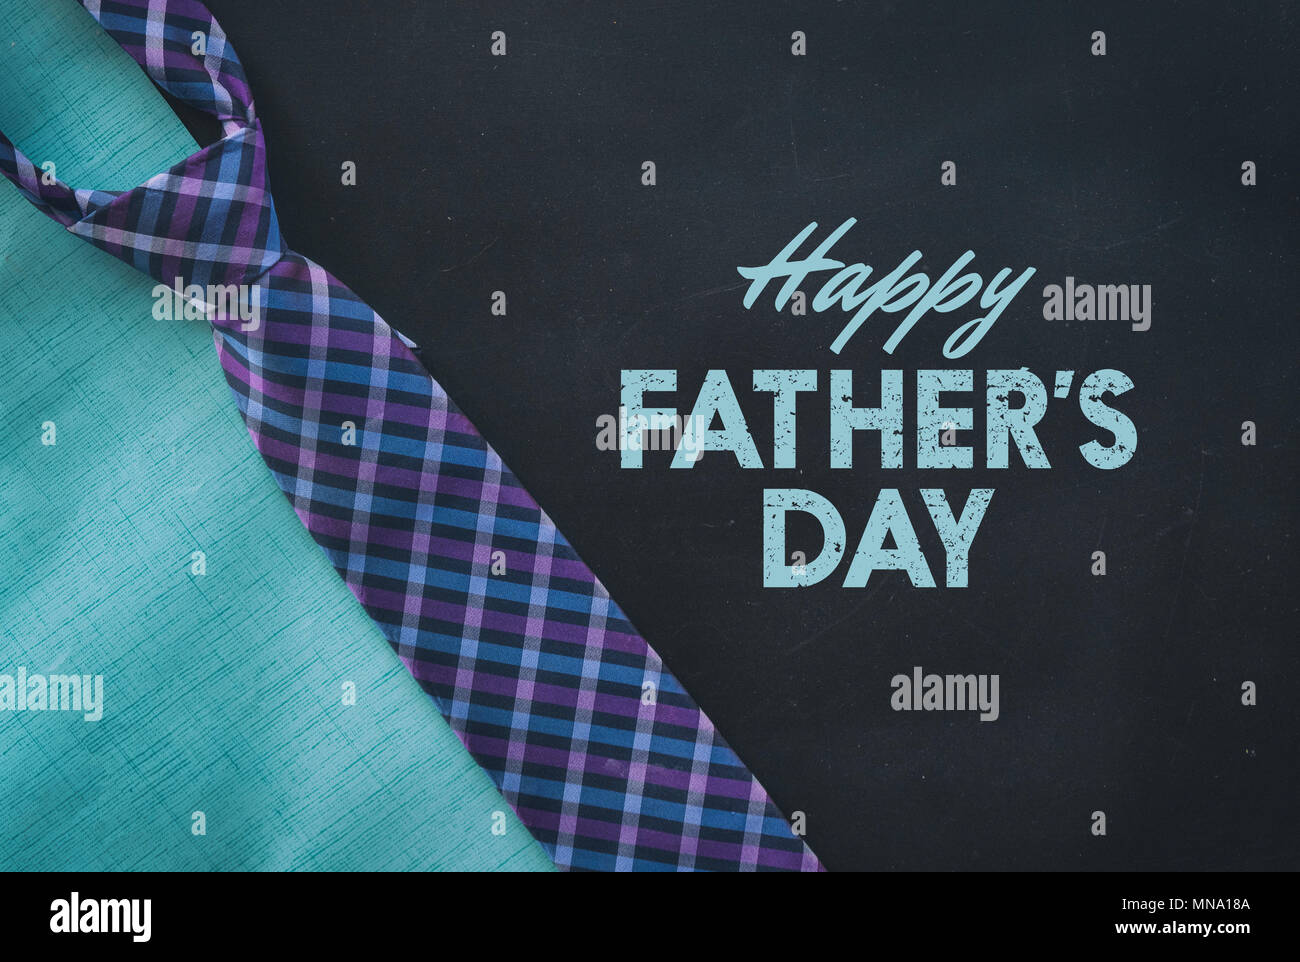 Blue and purple plaid necktie with happy fathers day text for holiday graphic - Stock Image